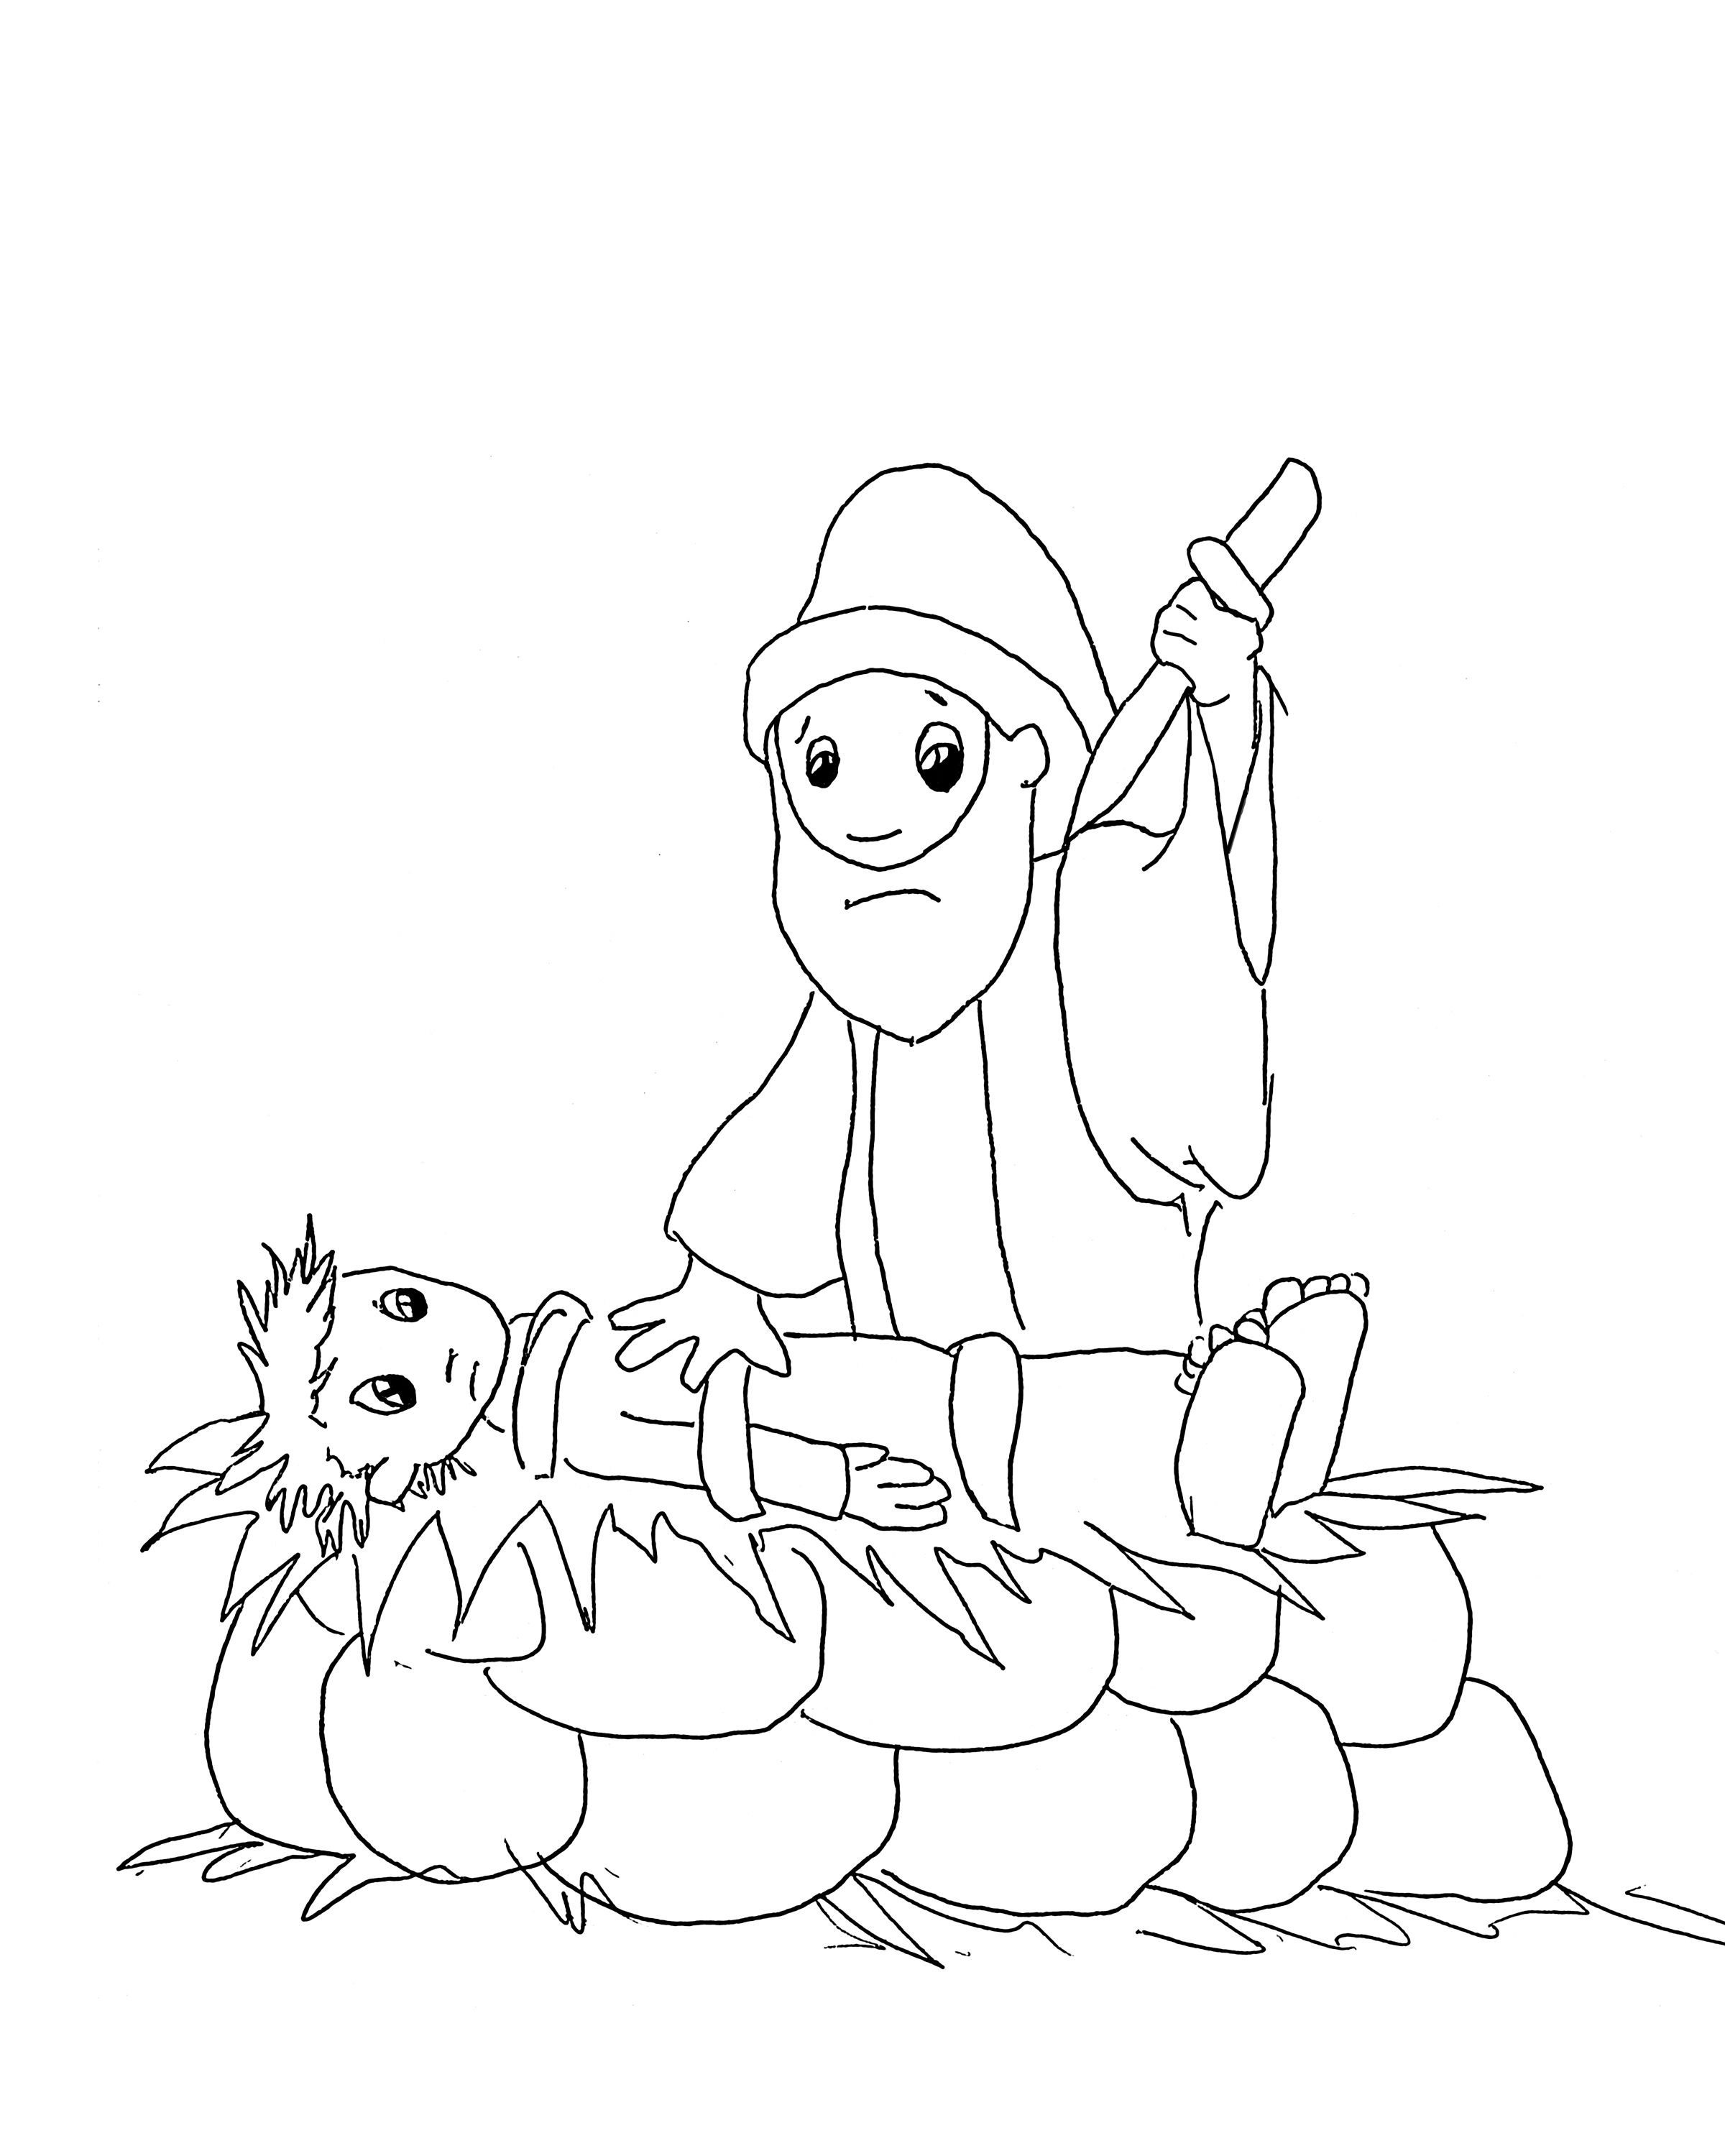 A Picture From One Of The Coloring Books Faithful Abraham Ready To Sacrifice Isaac Who Was At